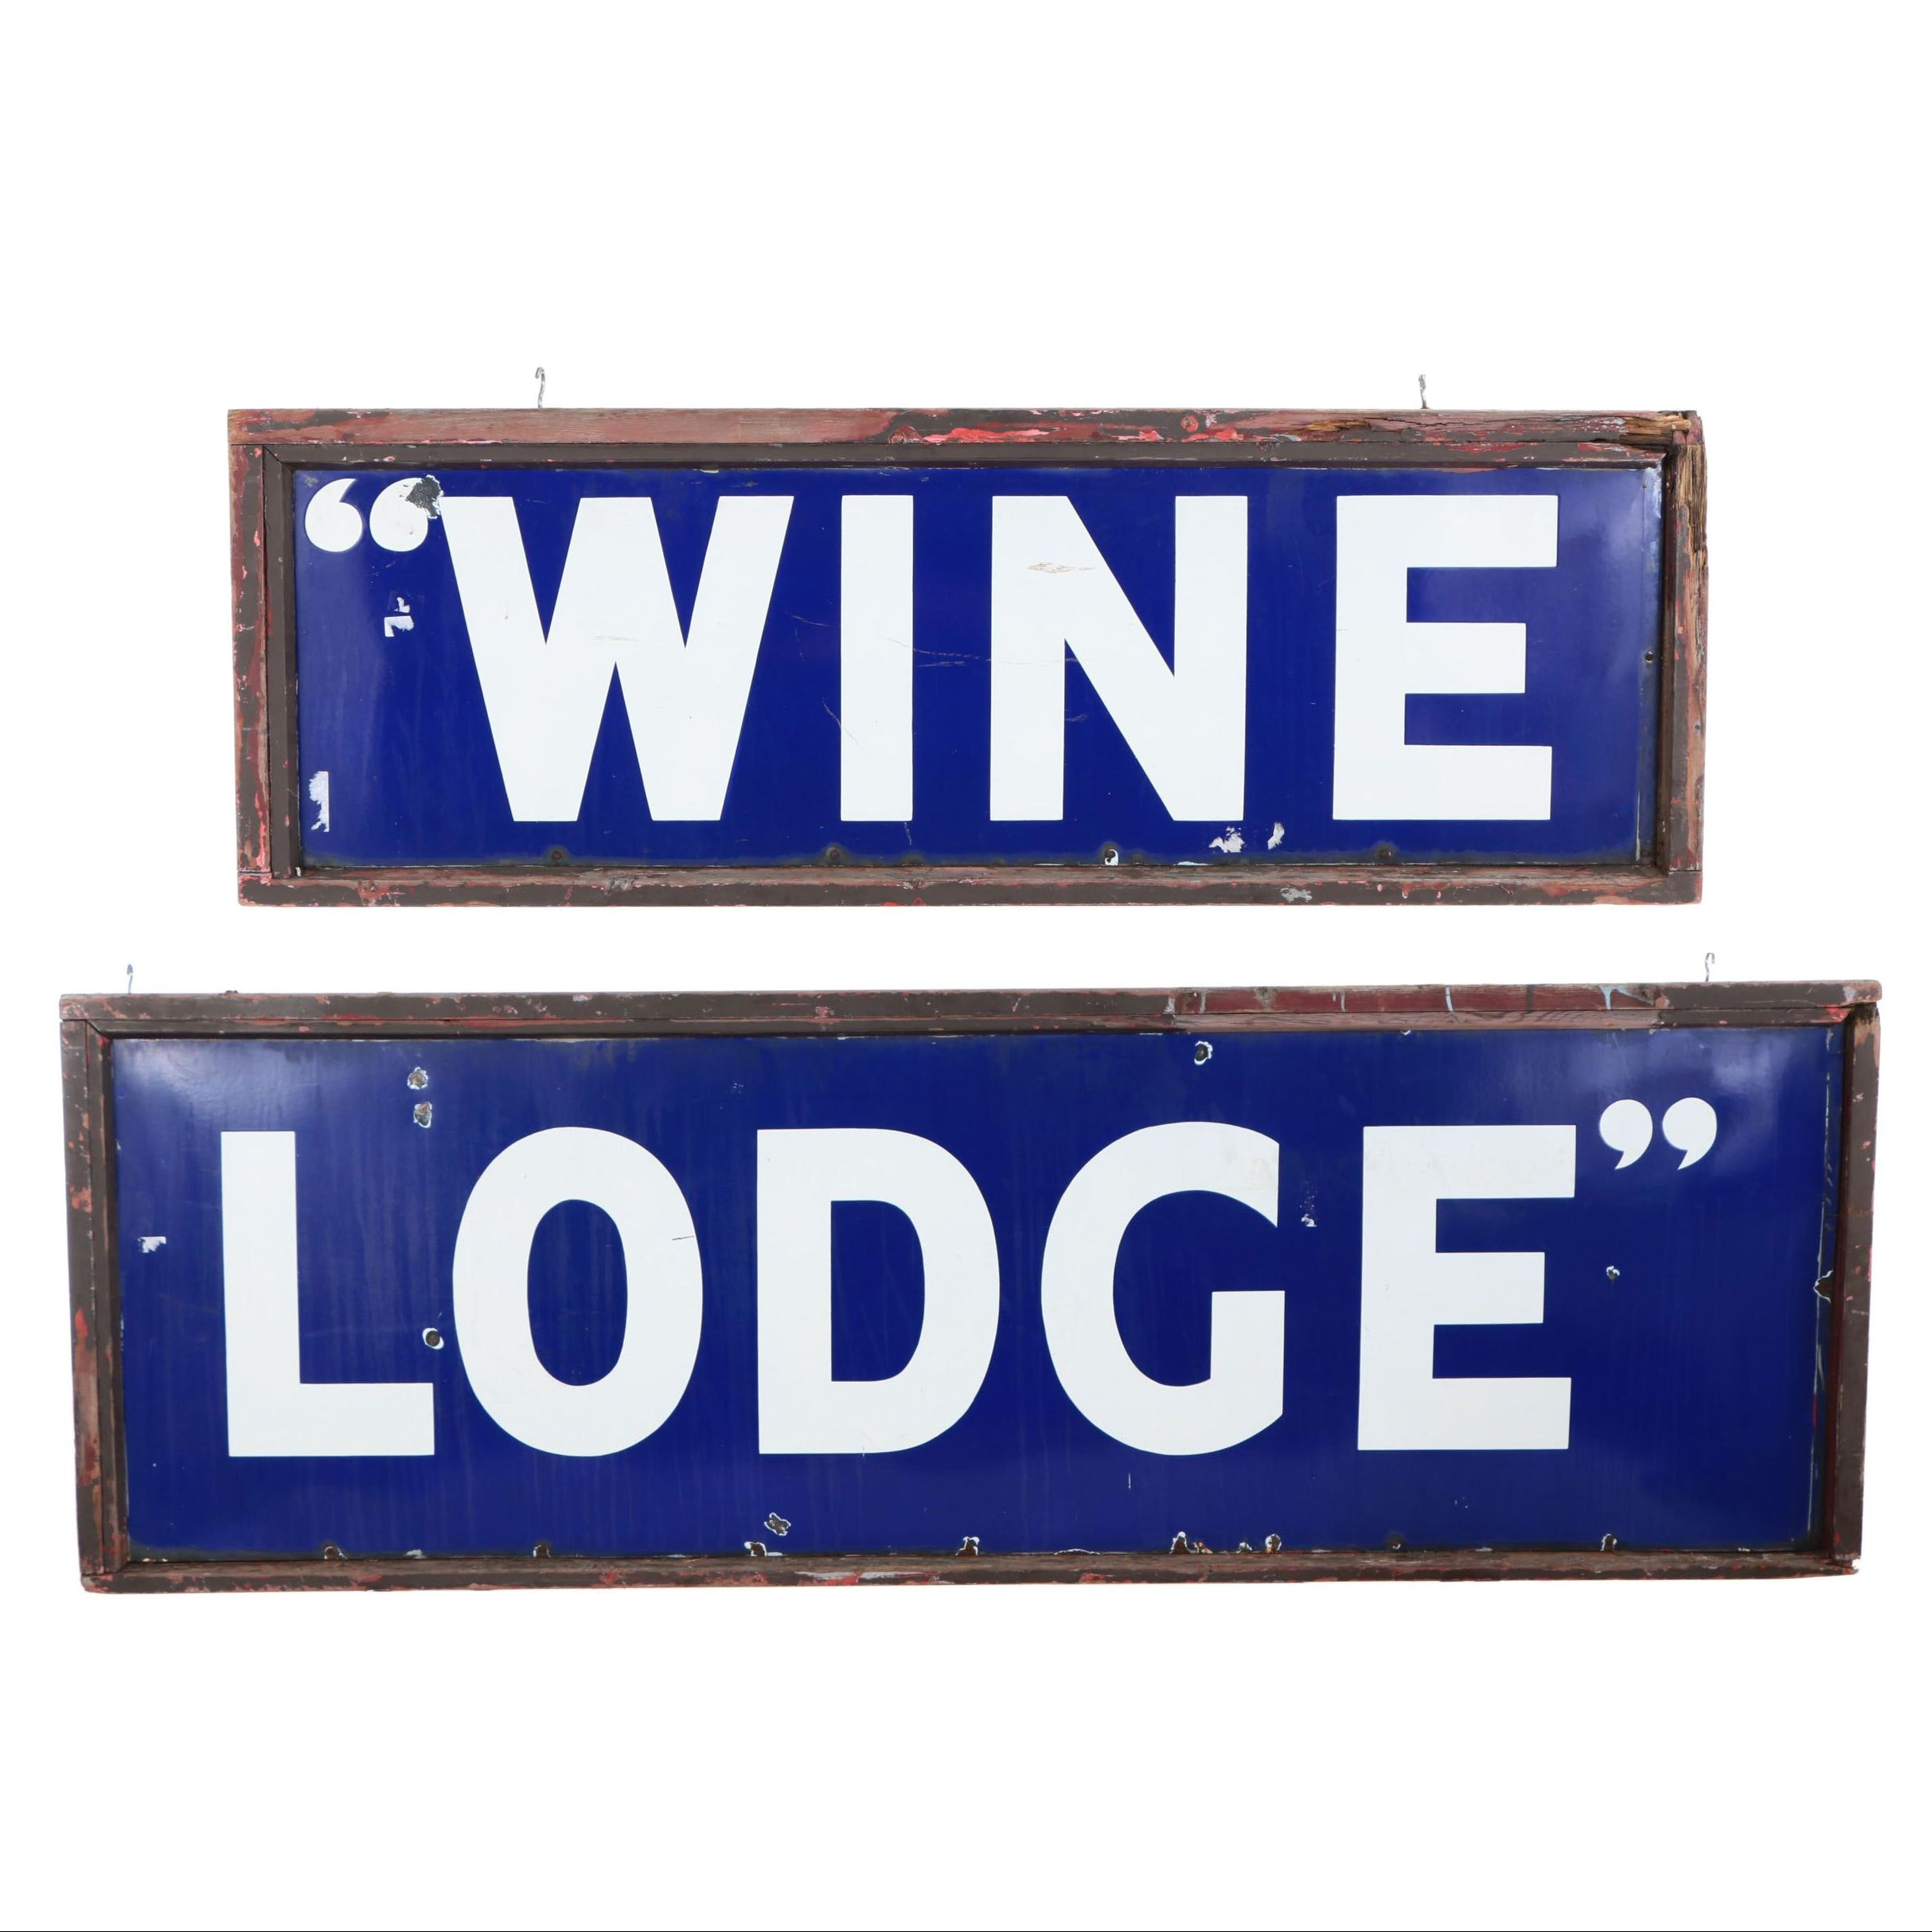 "Enameled Metal ""Wine Lodge"" Sign in Two Parts, 20th Century"